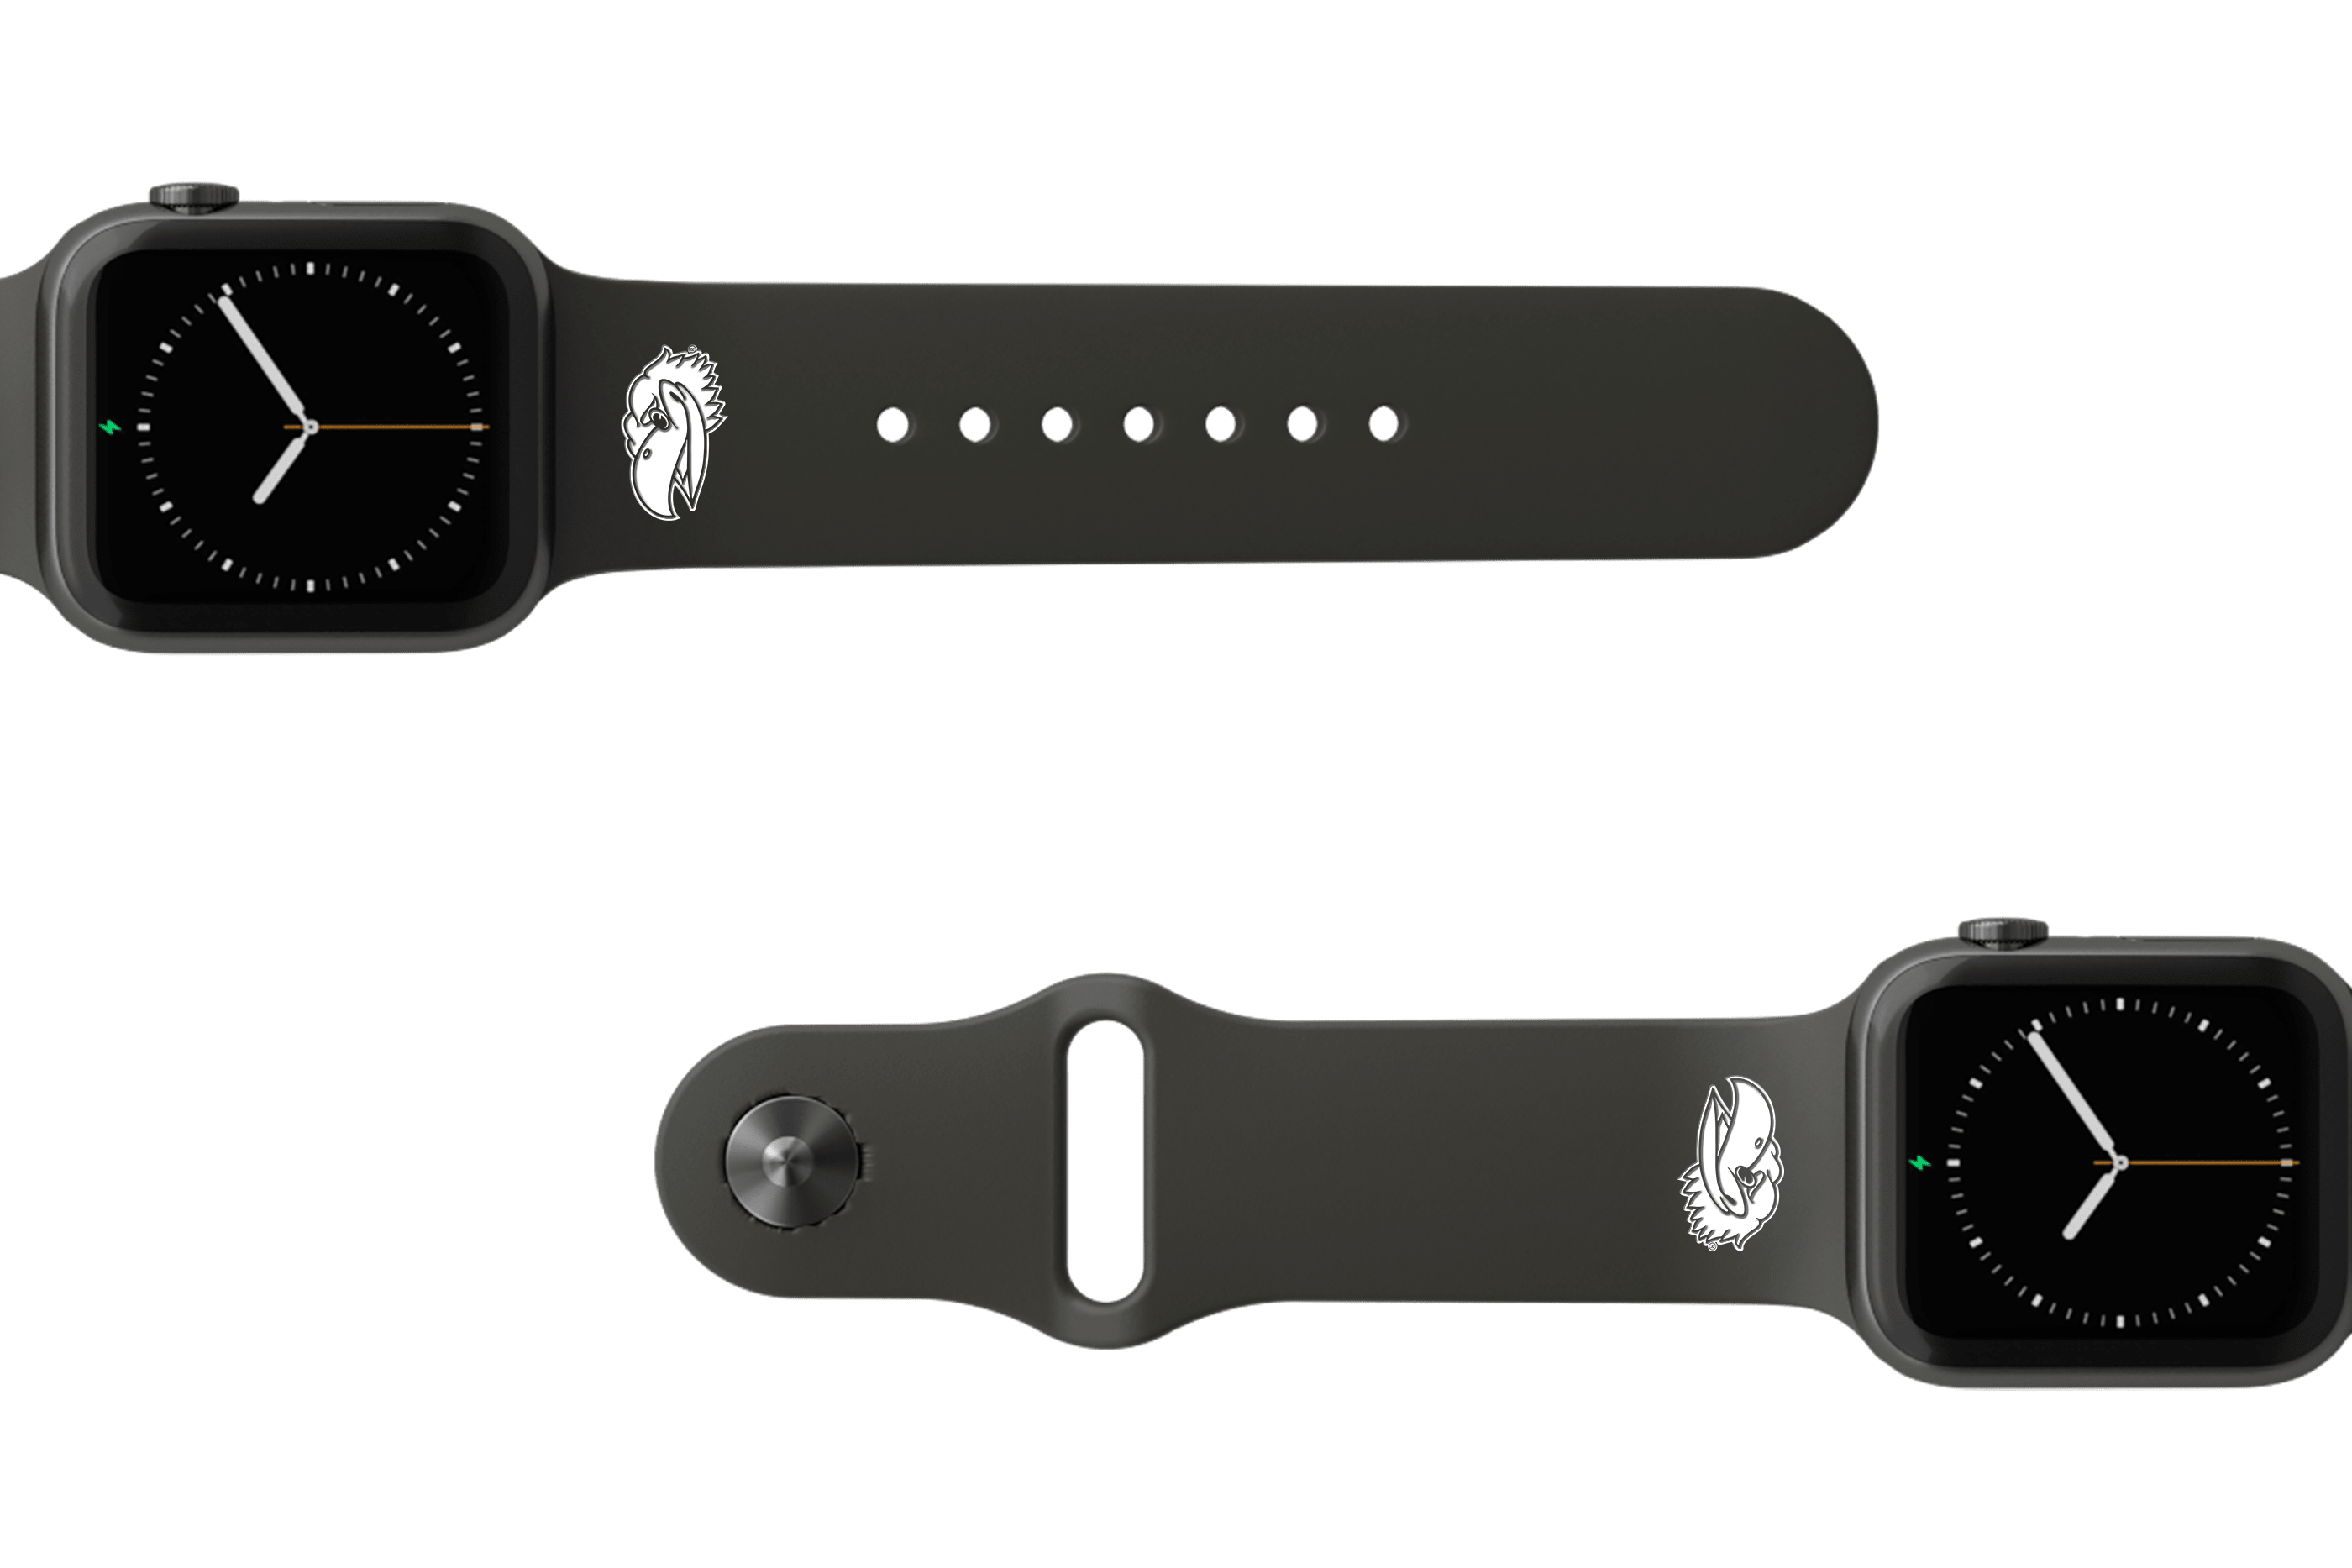 College Kansas Black   apple watch band with gray hardware viewed from rear